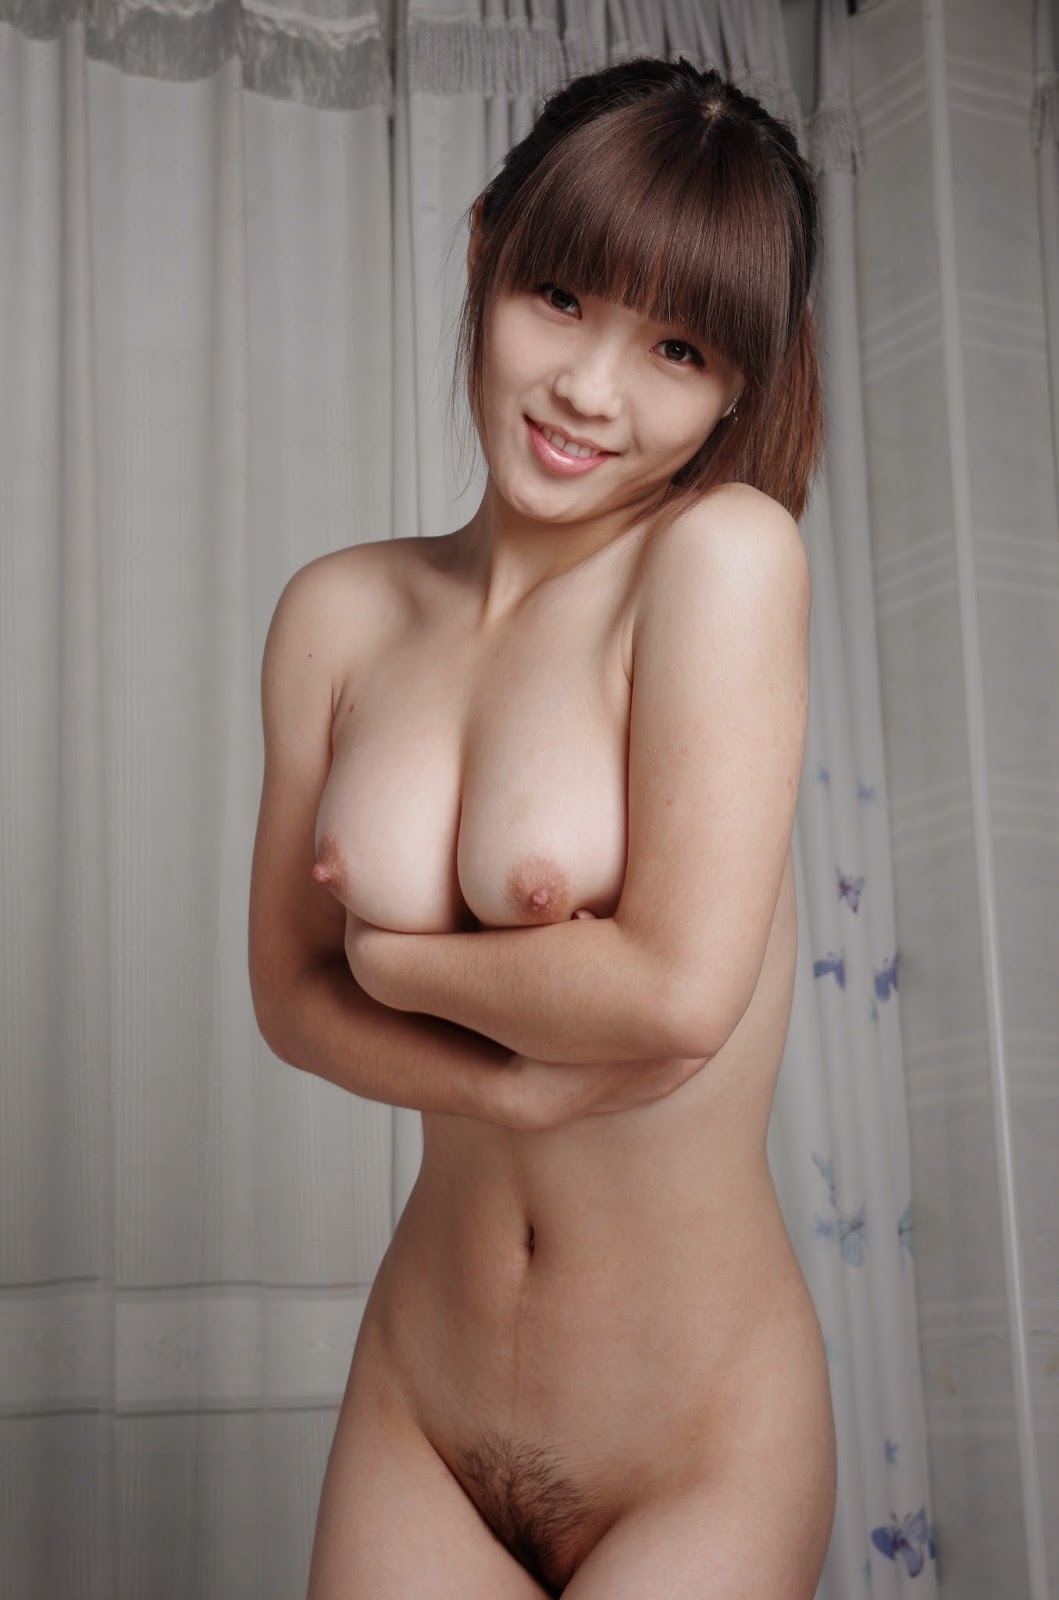 Hairy Pussy Of Naked Asian Girl